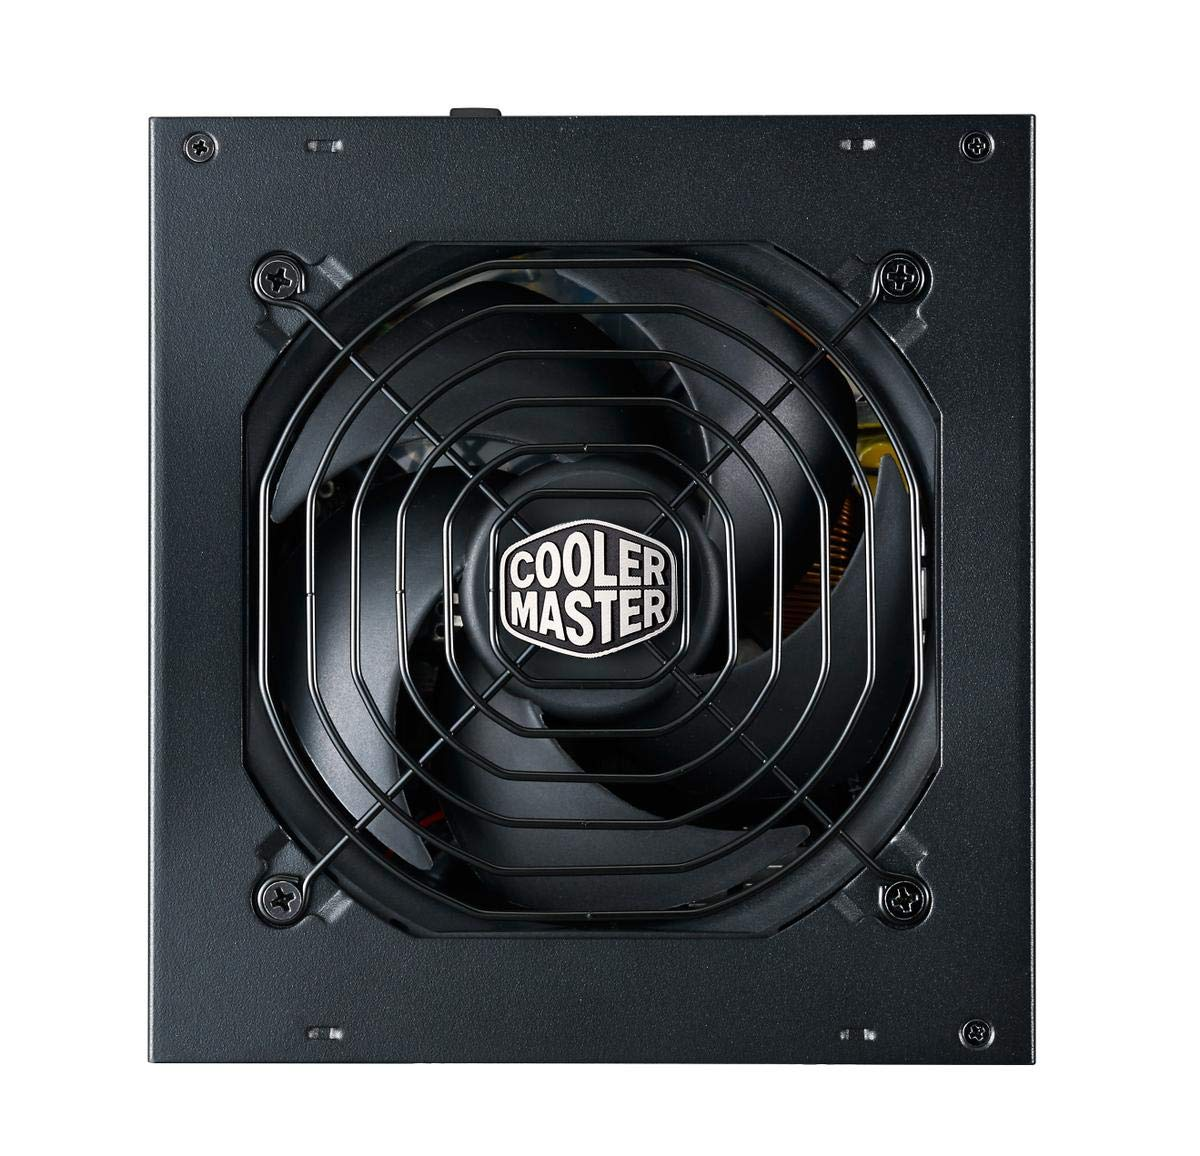 Cooler Master MPY-6501-AFAAG-US MWE 650 Gold Full Modular, 80+ Gold Certified 650W Power Supply, 5 Year Warranty by Cooler Master (Image #2)